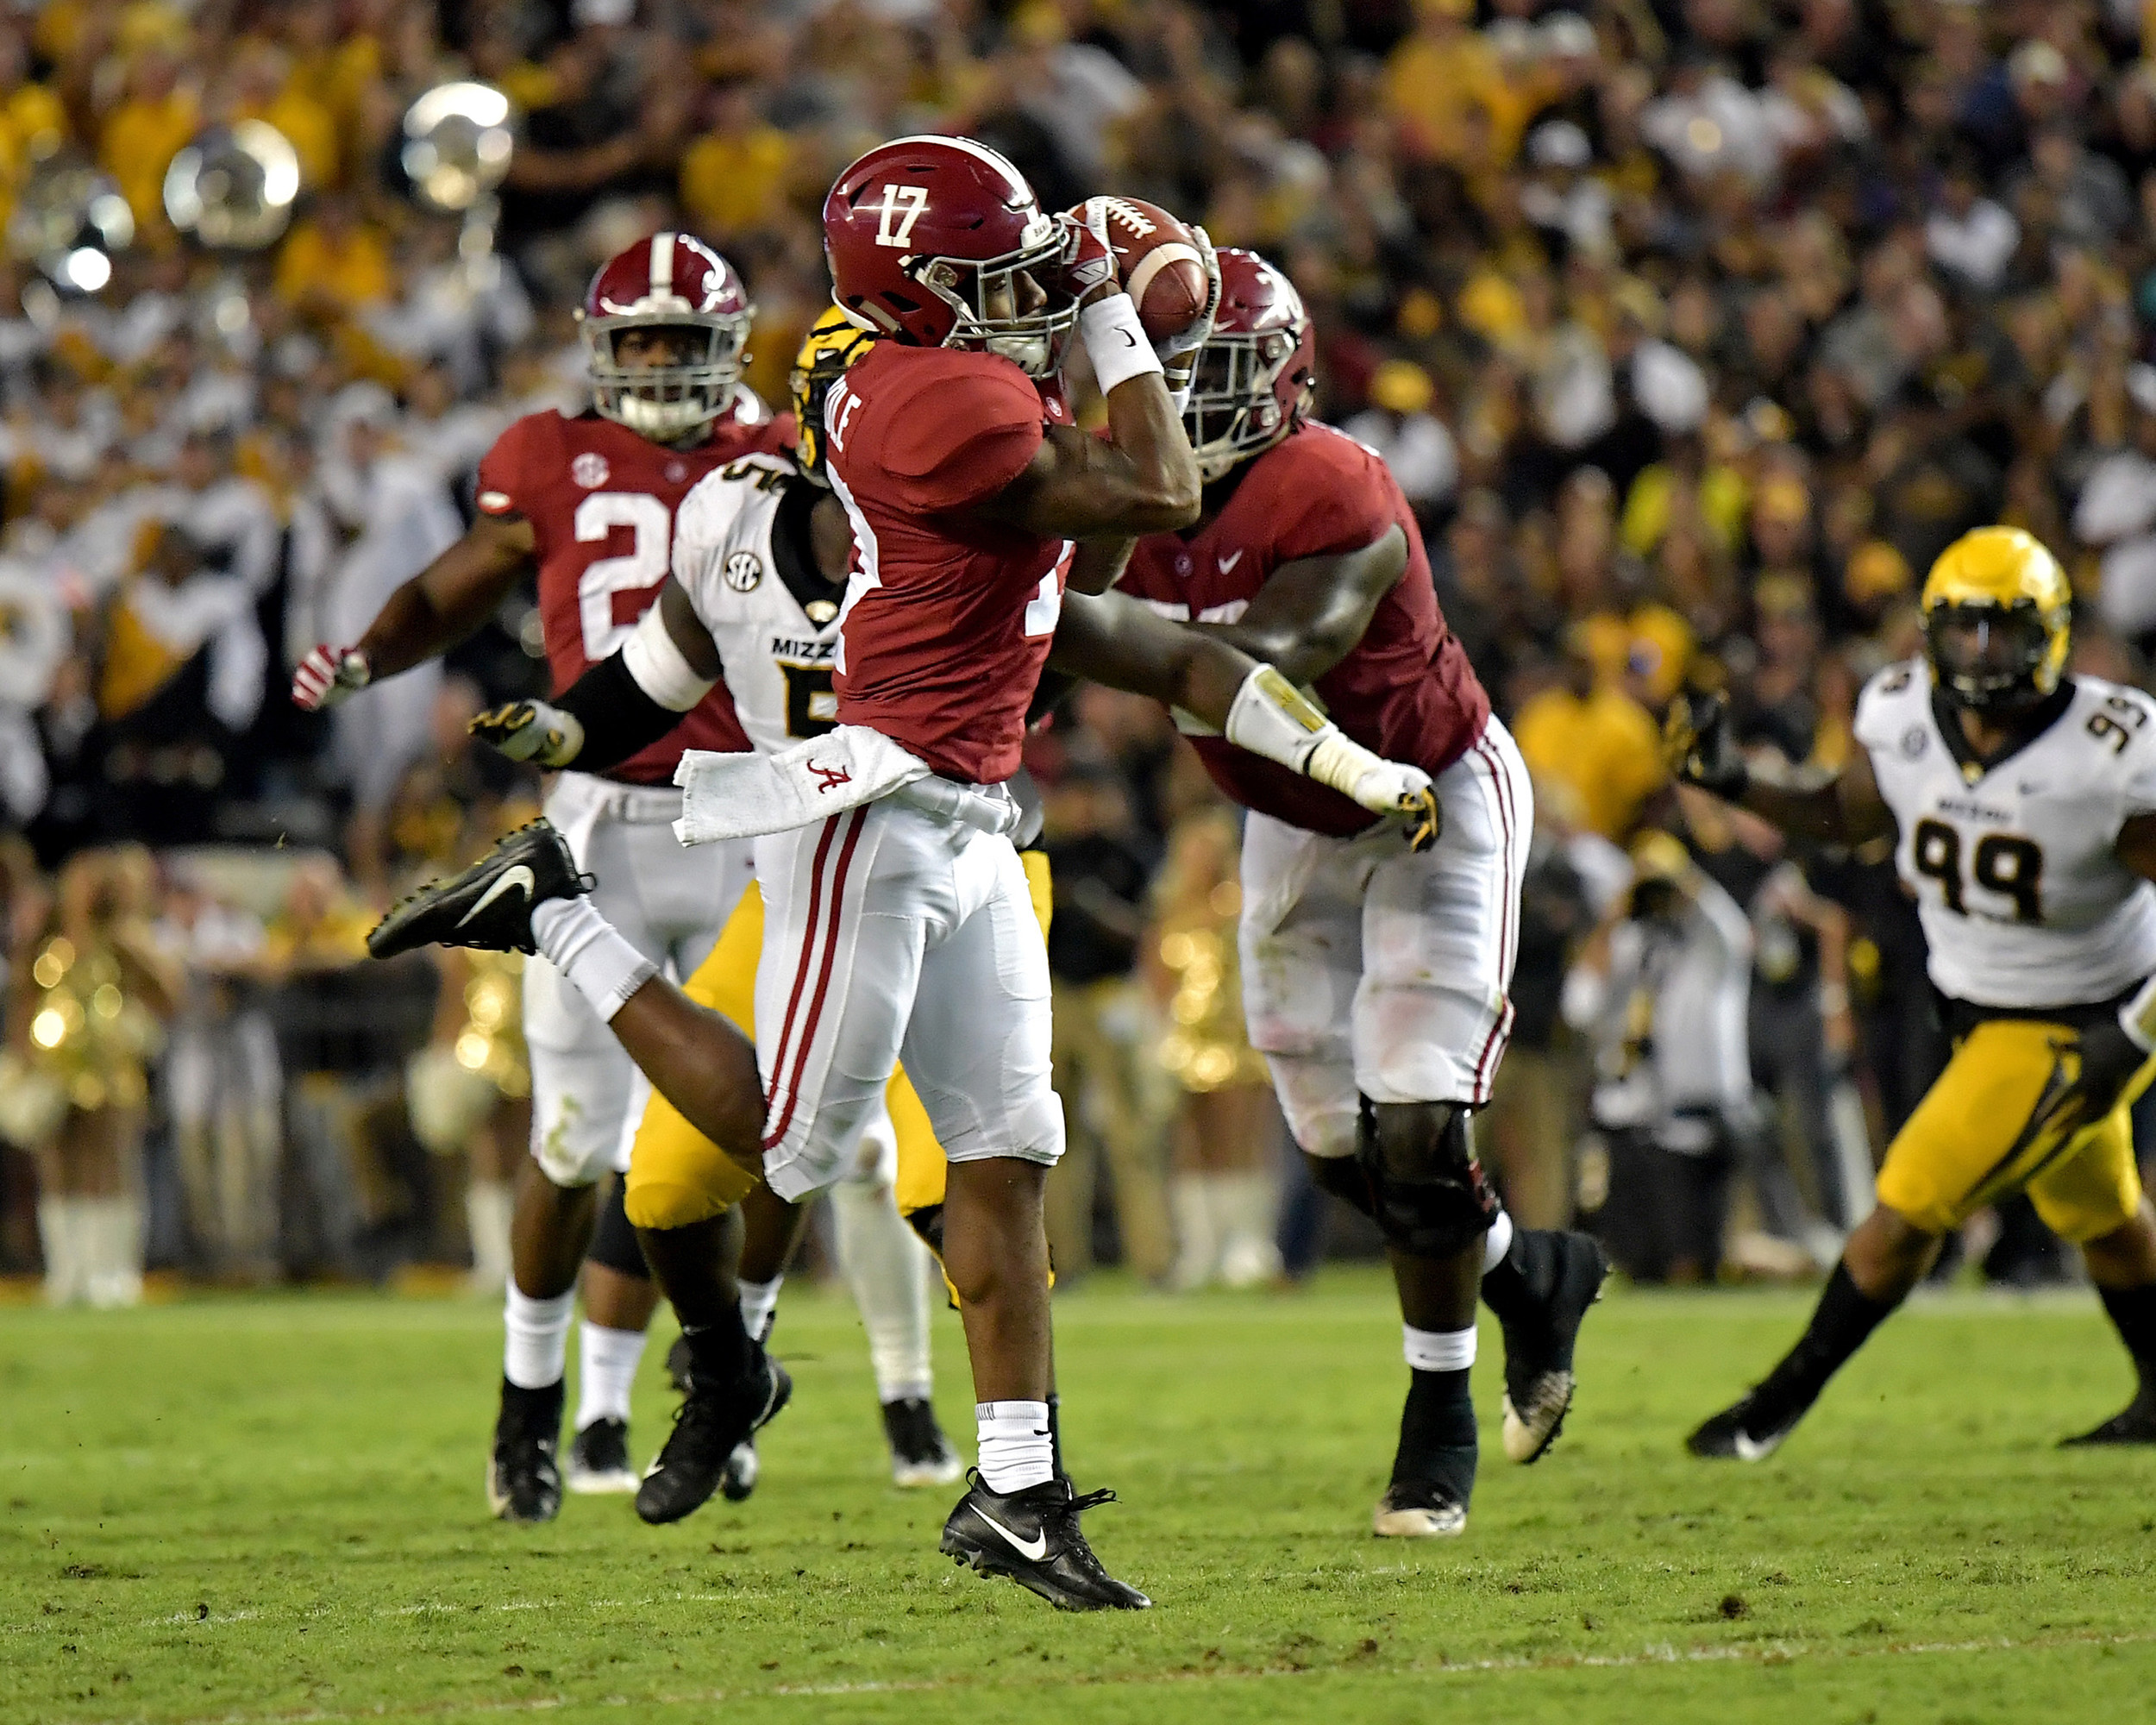 From the first half of the Missouri Tigers versus Alabama Crimson Tide NCAA football game at Bryant-Denny Stadium in Tuscaloosa, Ala., on Oct. 13, 2018. Alabama defeated Missouri 39-10. (Photo by Lee Walls)